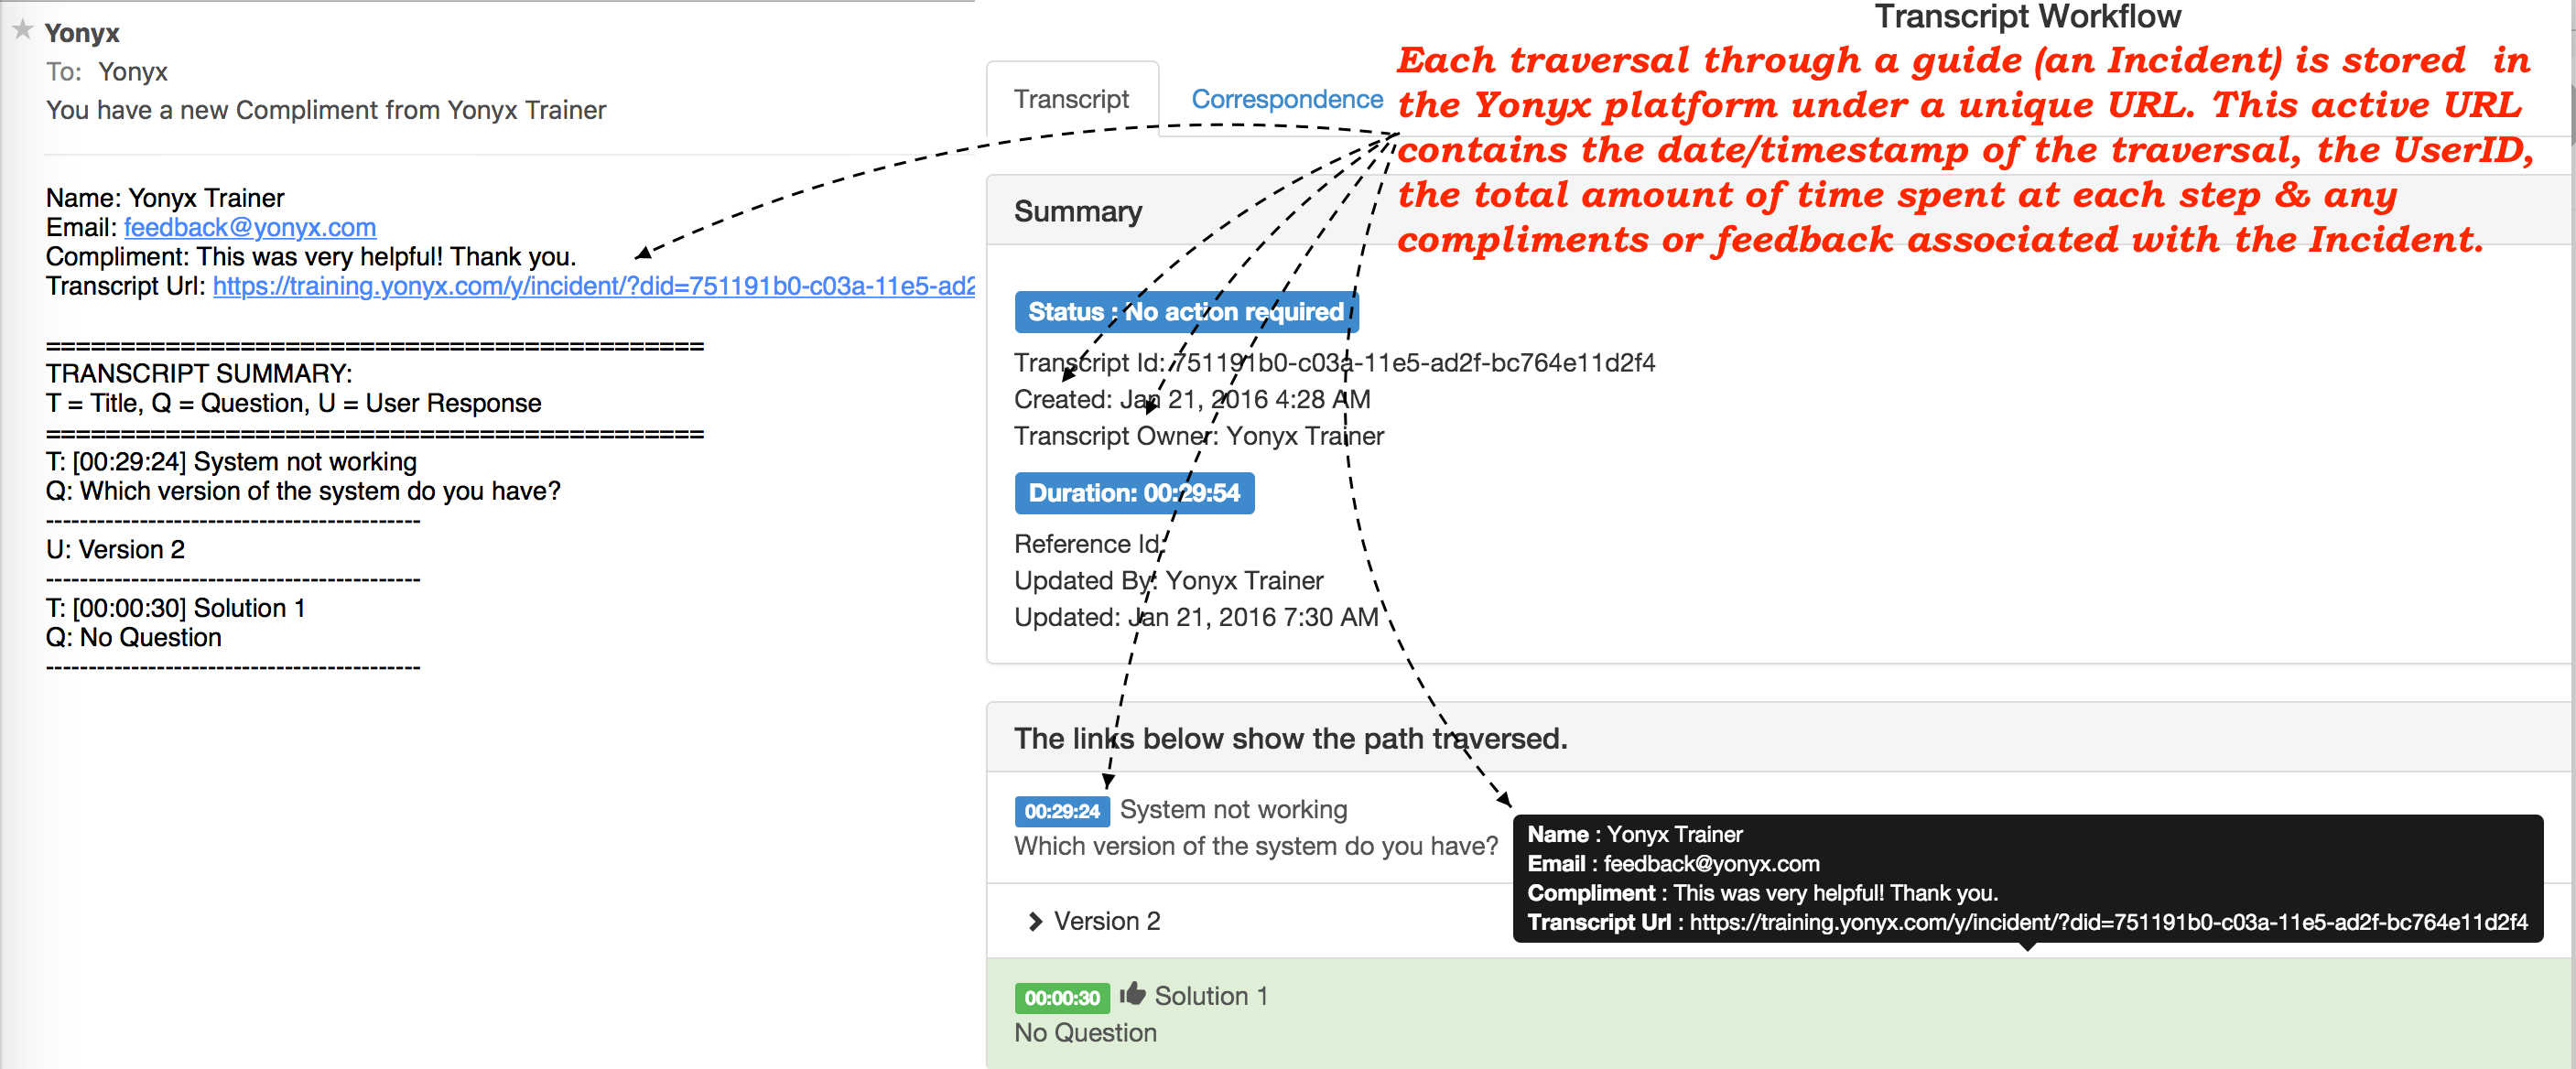 Yonyx OneClick Transcript captures the path traversed by a User through the guide.